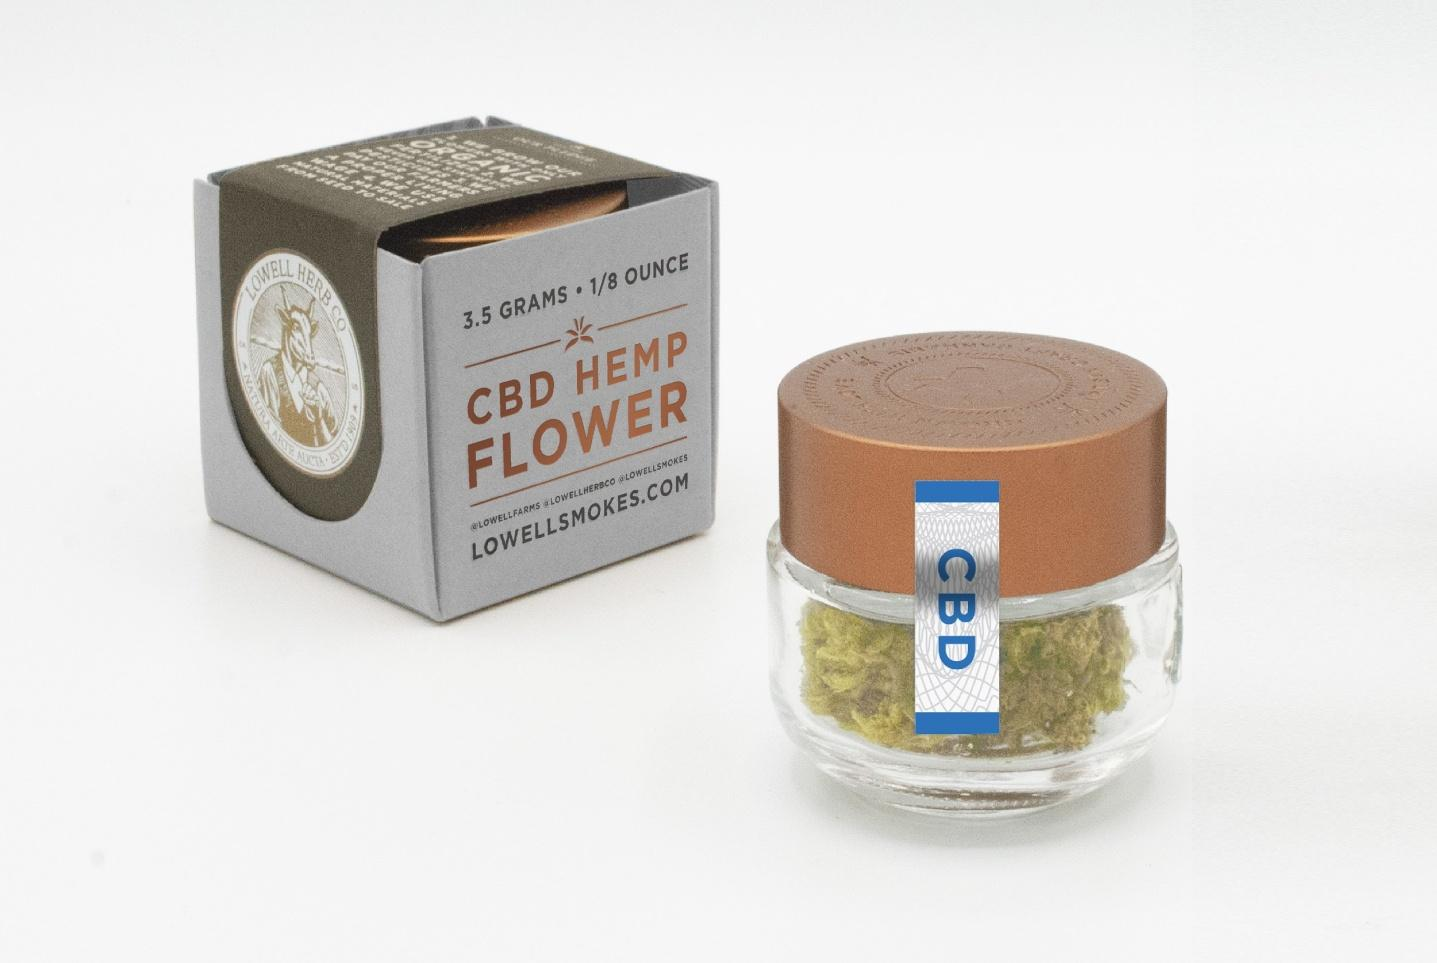 Significant Other CBD Flower